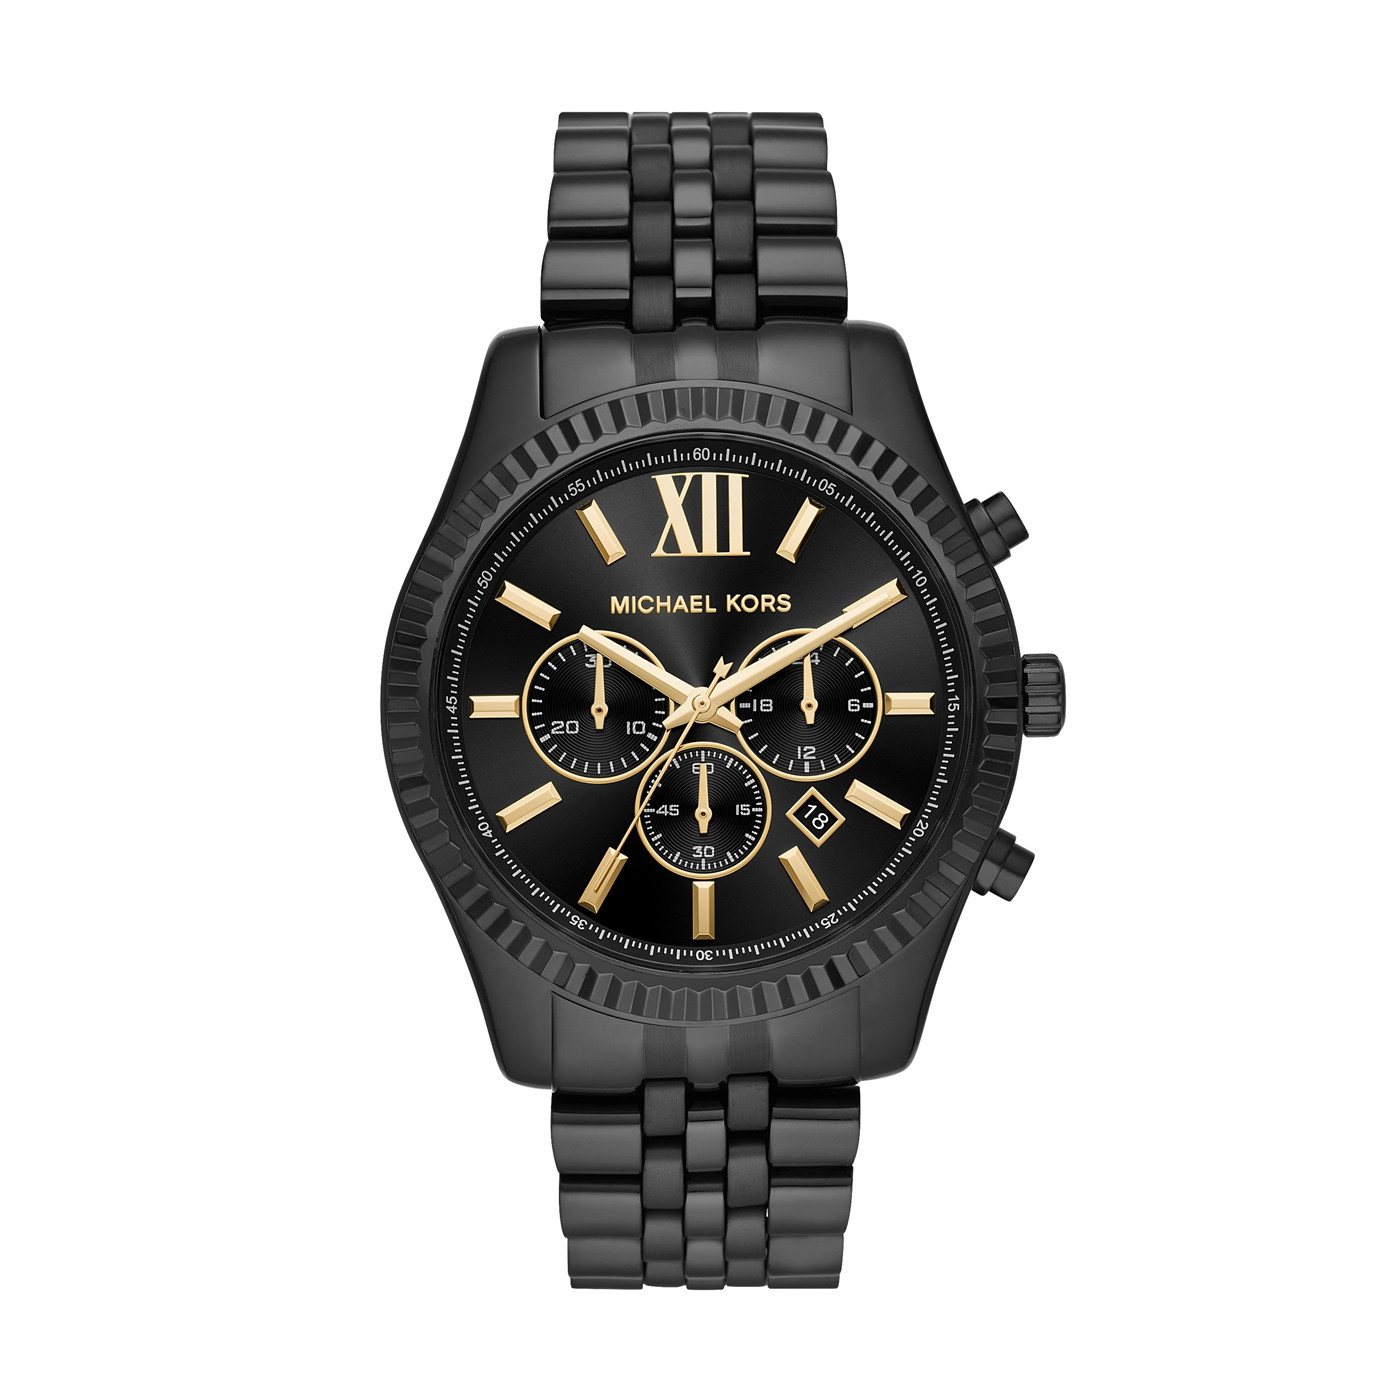 315b08445844e Michael Kors Lexington Watch MK8603 - Watches